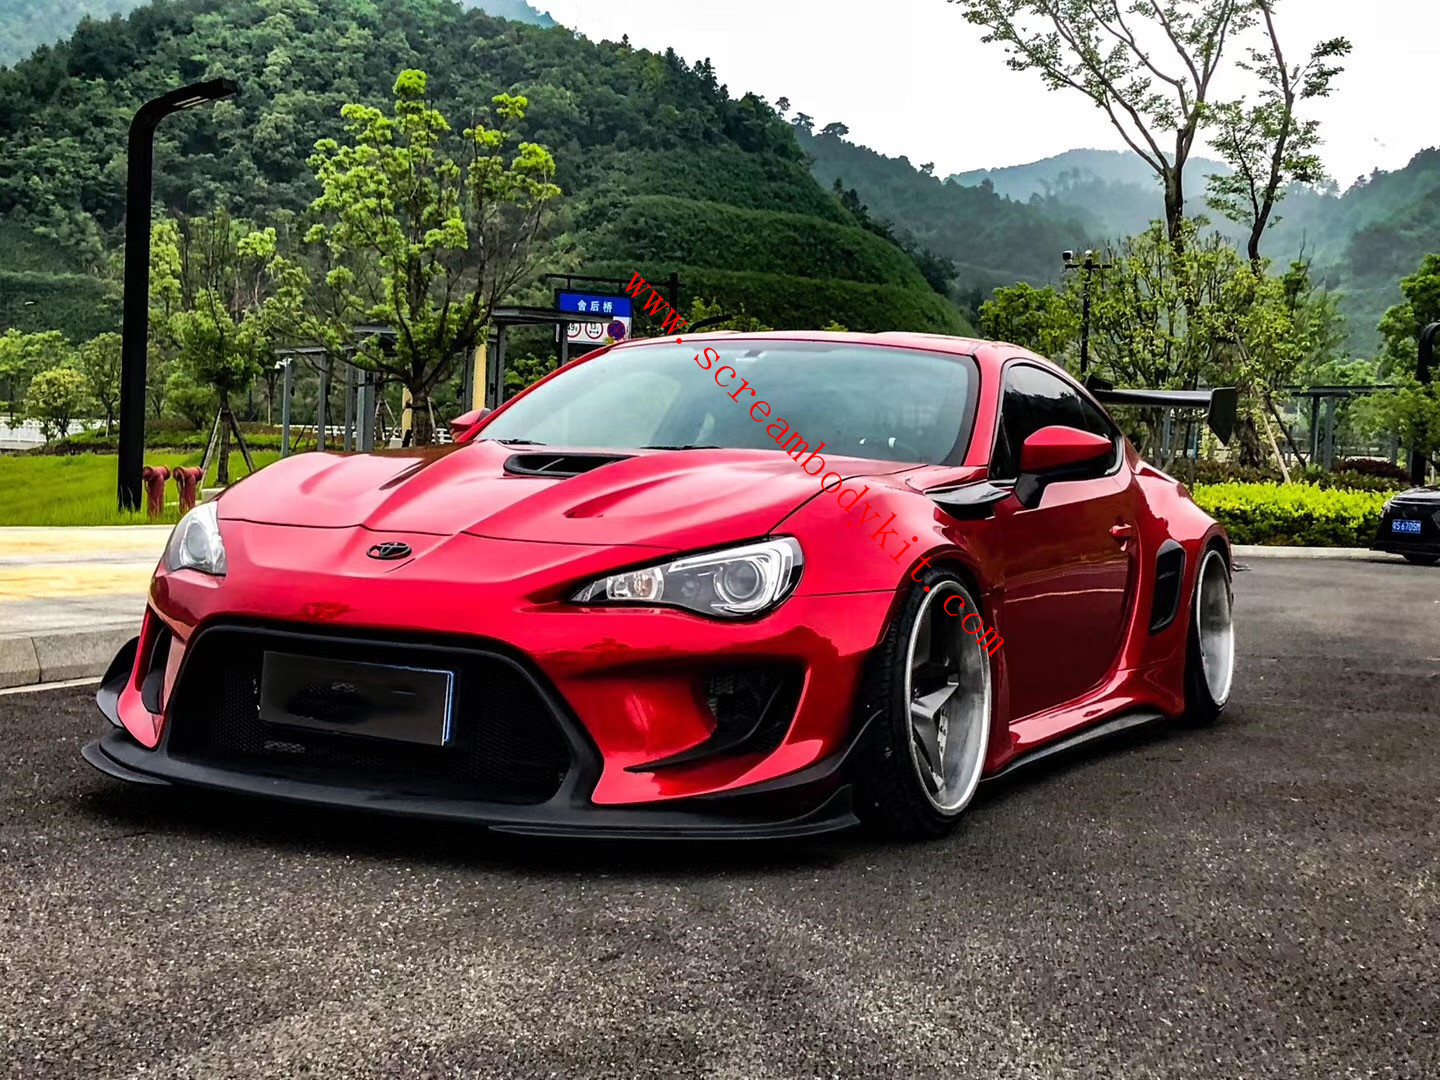 Toyota GT86 BRZ wide body kit front bumper side skirts rear bumper wide fenders hood spoiler